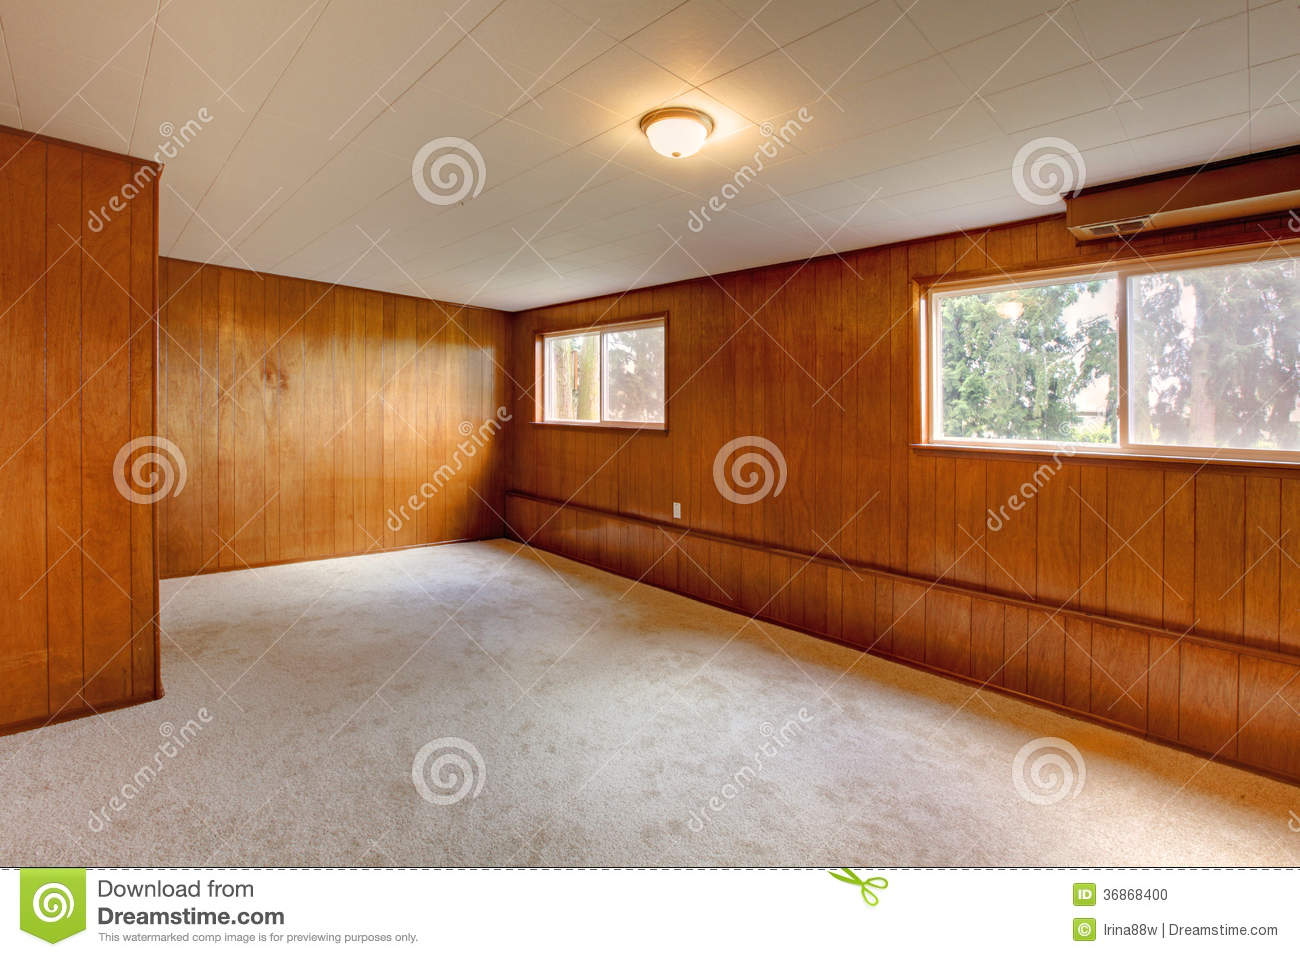 Red wood panel walls empty room stock photo image 36868400 - Wood panel rooms ...